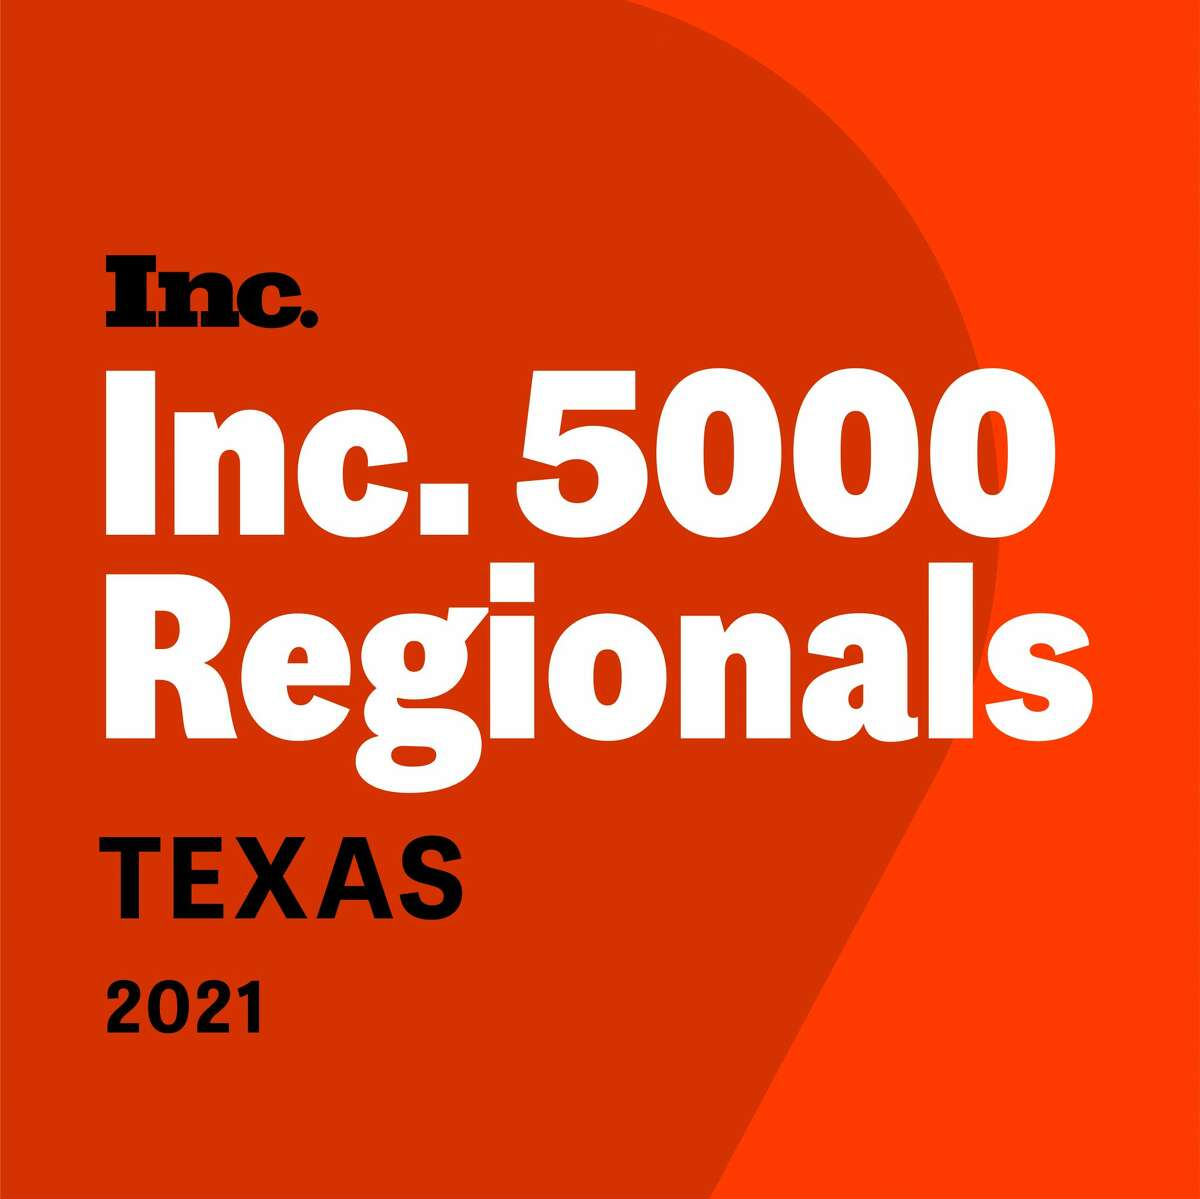 The Inc. 5000 Regionals for 2021 lists the 250 fastest-growing businesses in Texas.